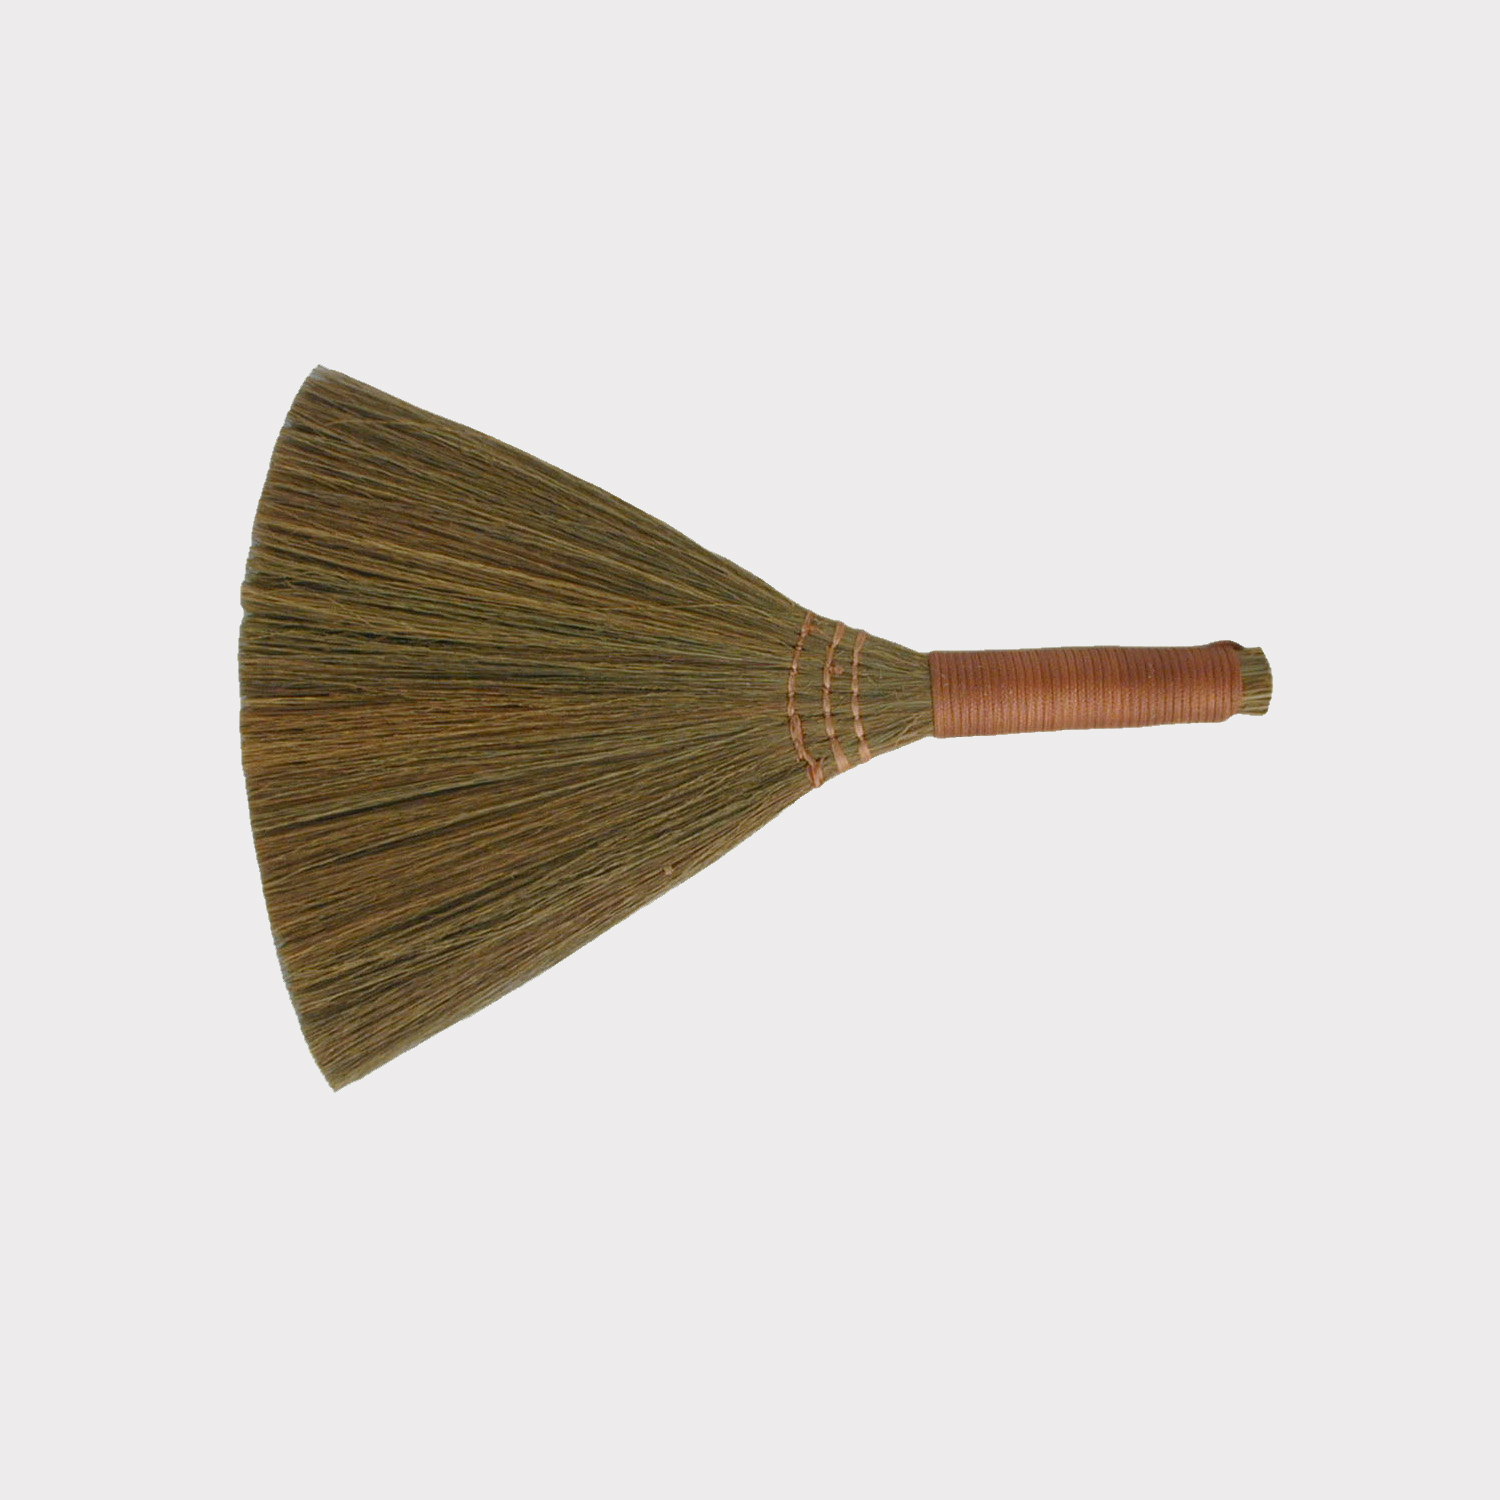 Grass Broom 260012